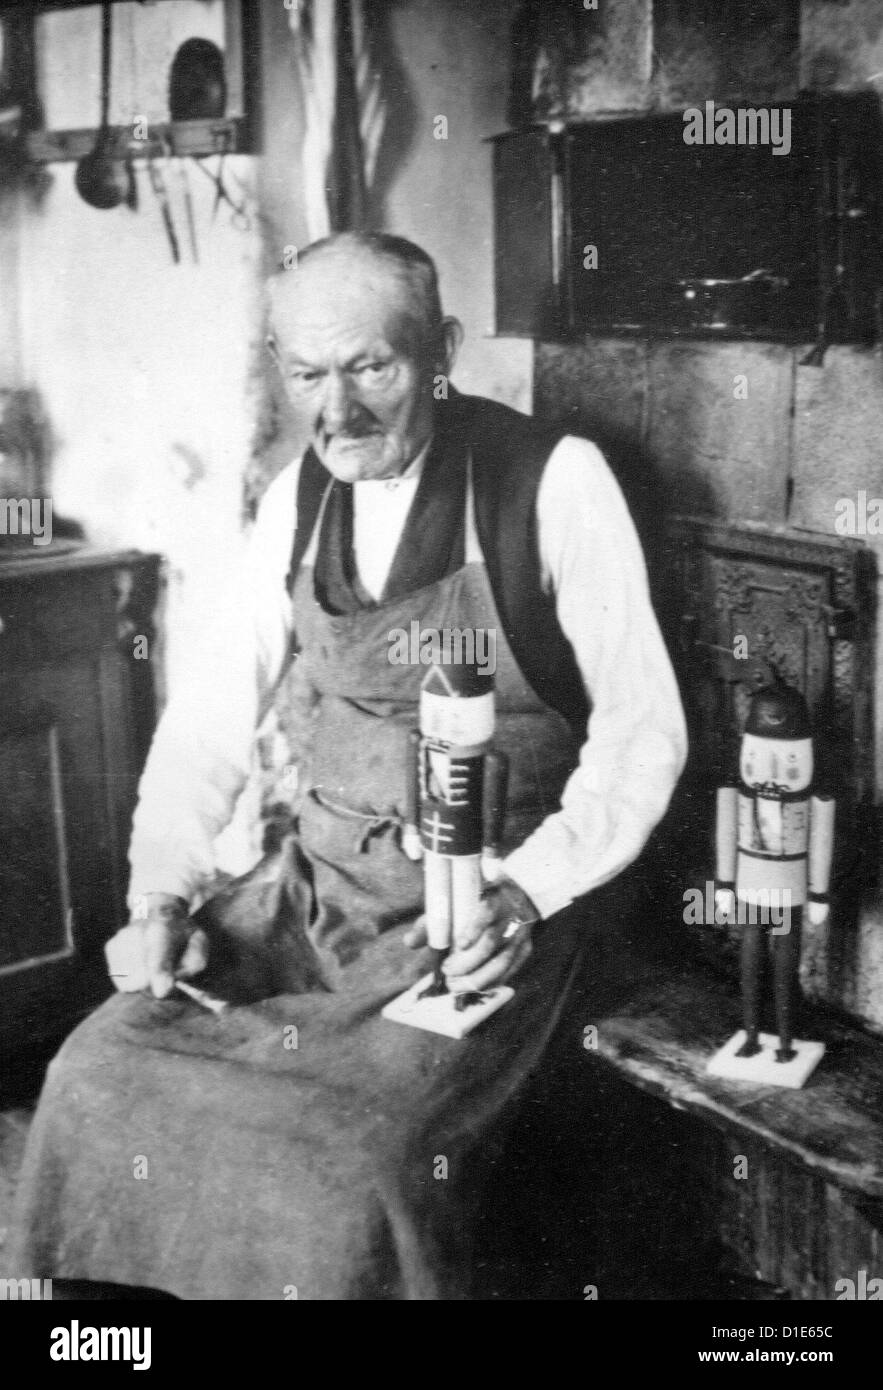 An undated historical photograph shows Wilhelm Fürster with two wooden nutcrackers in his workshop in Seiffen - Stock Image